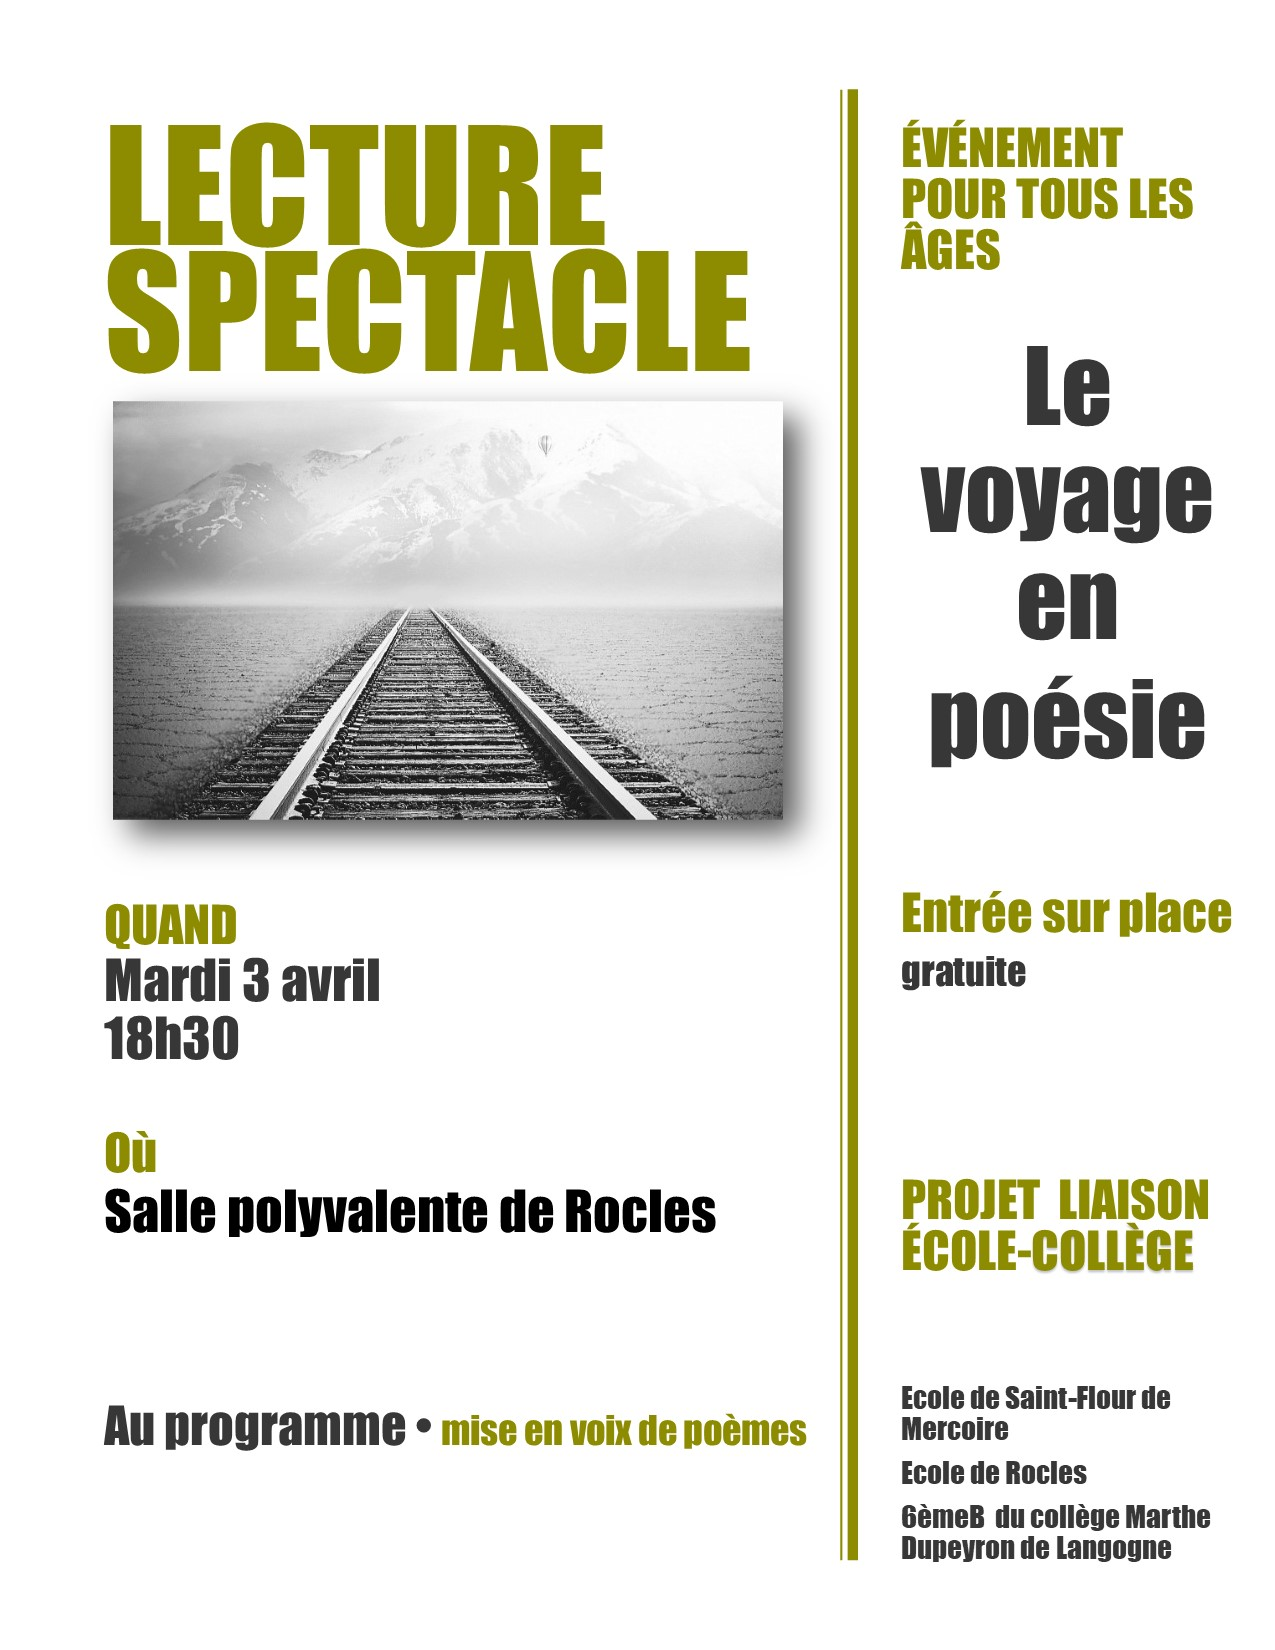 LECTURE SPECTACLE